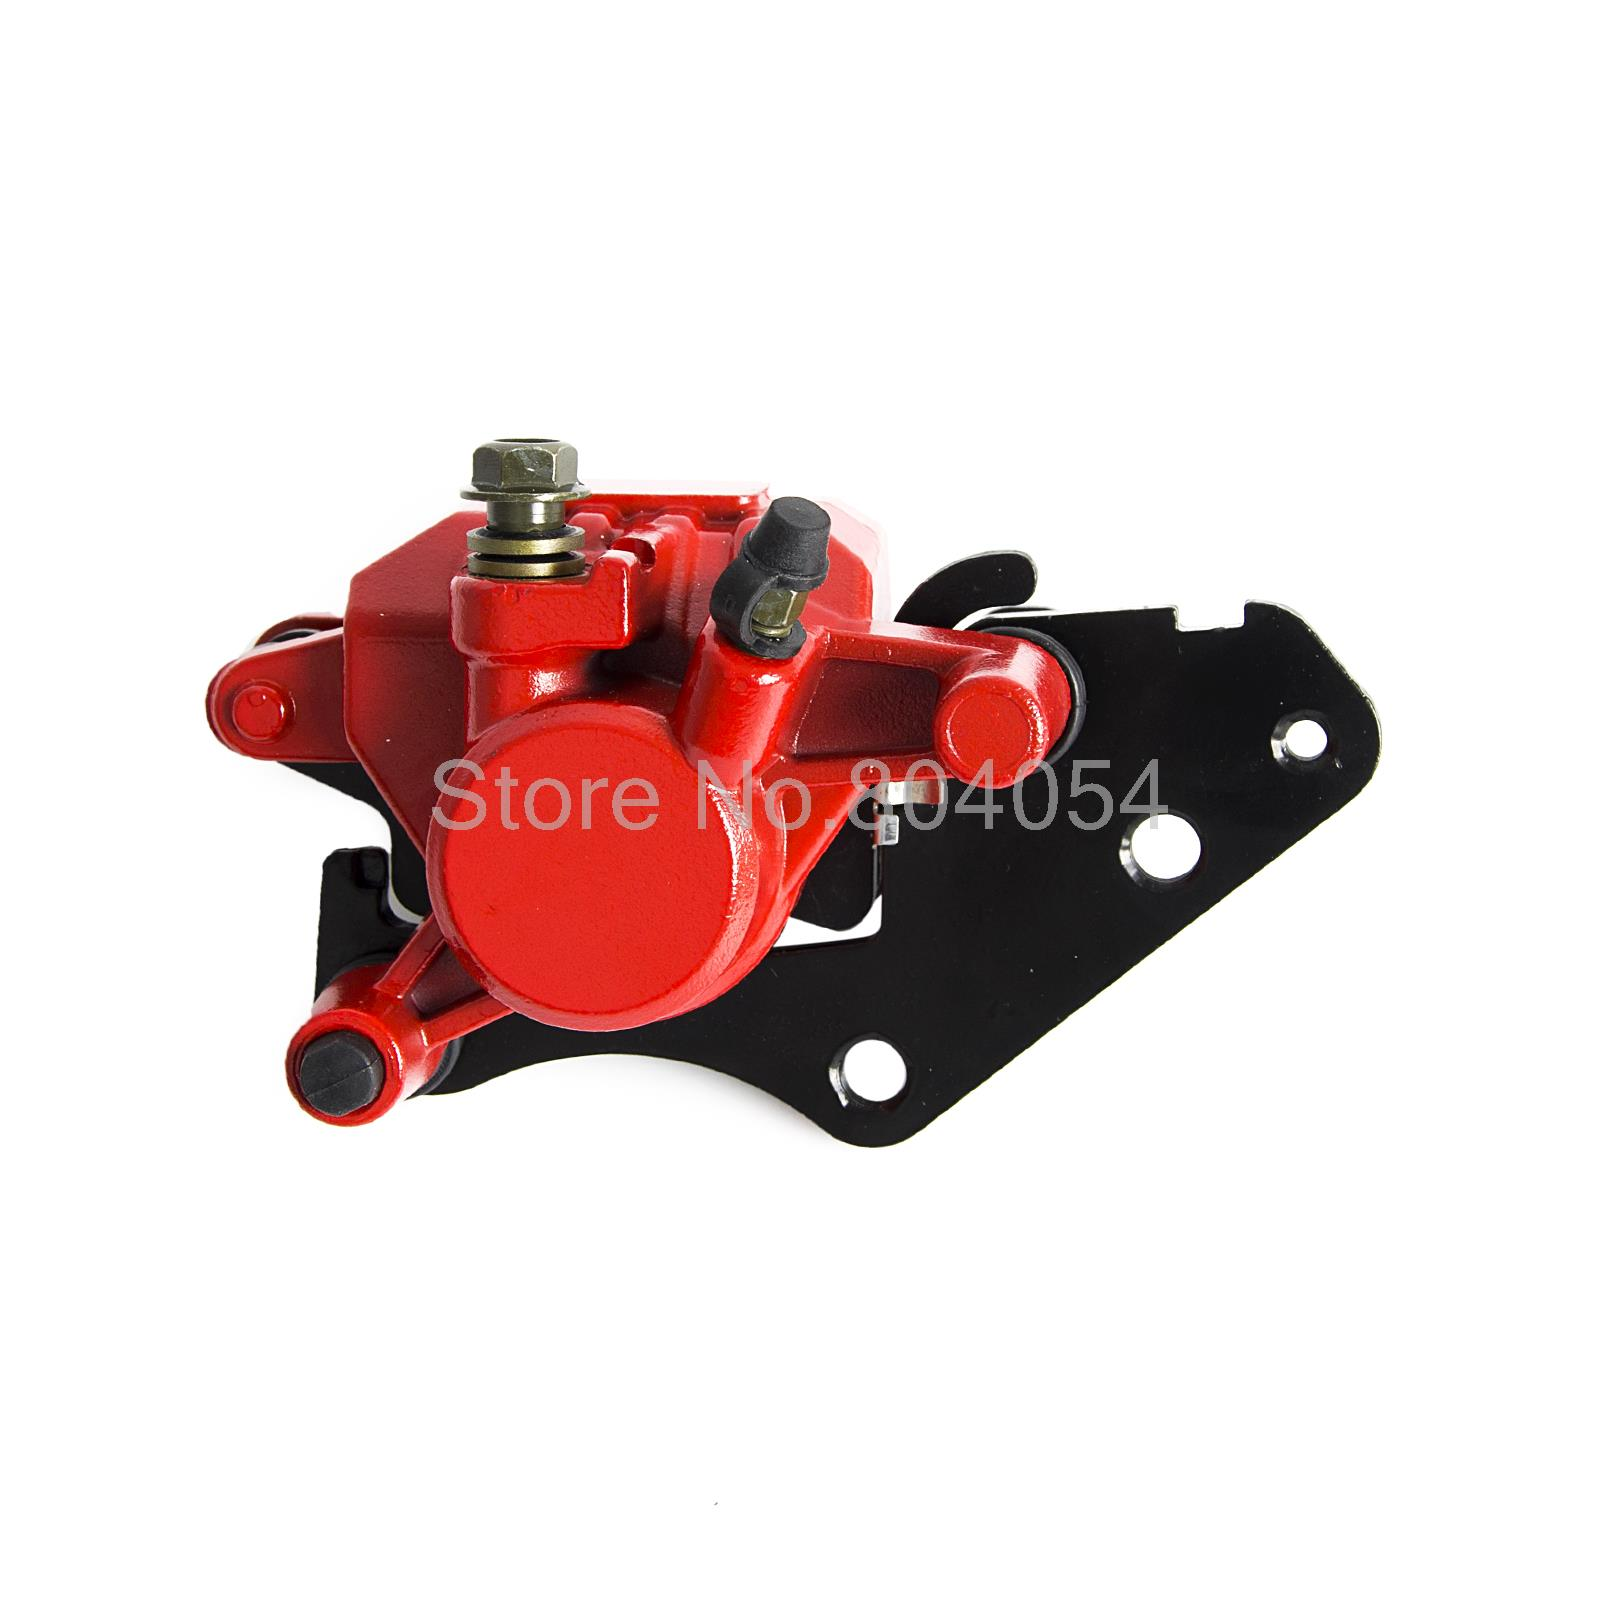 Front Brake Caliper Assy With Pads For Yamaha XC125E Axis Treet 09-13 E53J hdmi vga 2av reversing driver board 8inch at080tn52 800 600 with touch panel